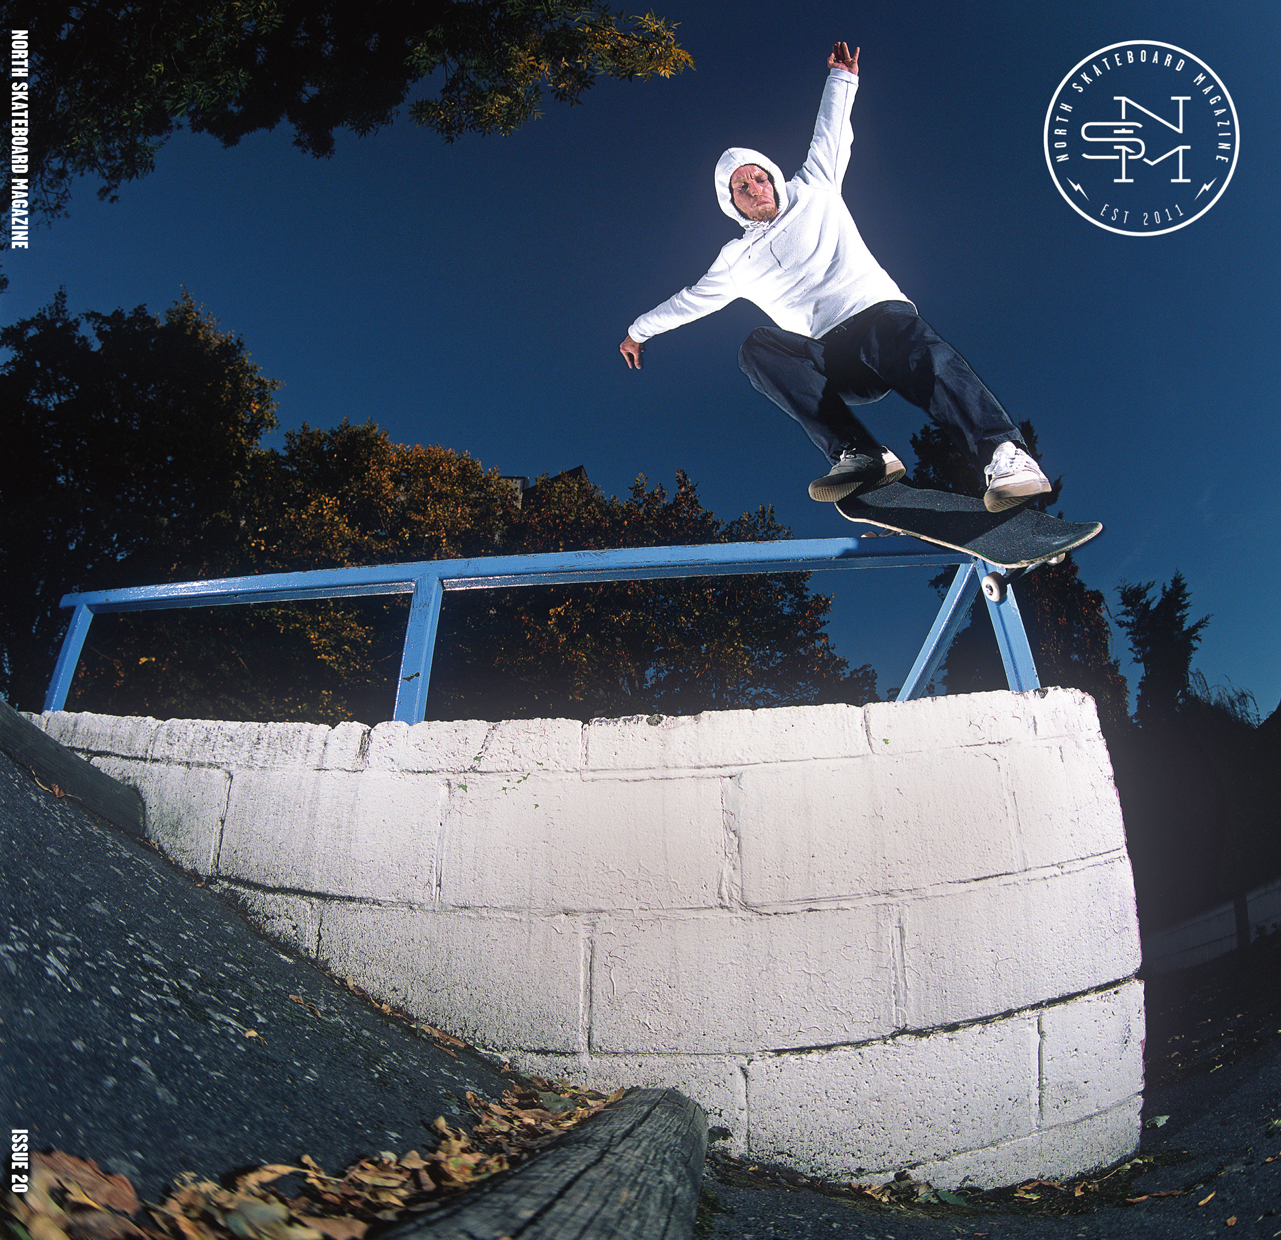 Cover: Charlie Munro - FS Boardslide Pop Over  Photographer: Graham Tait